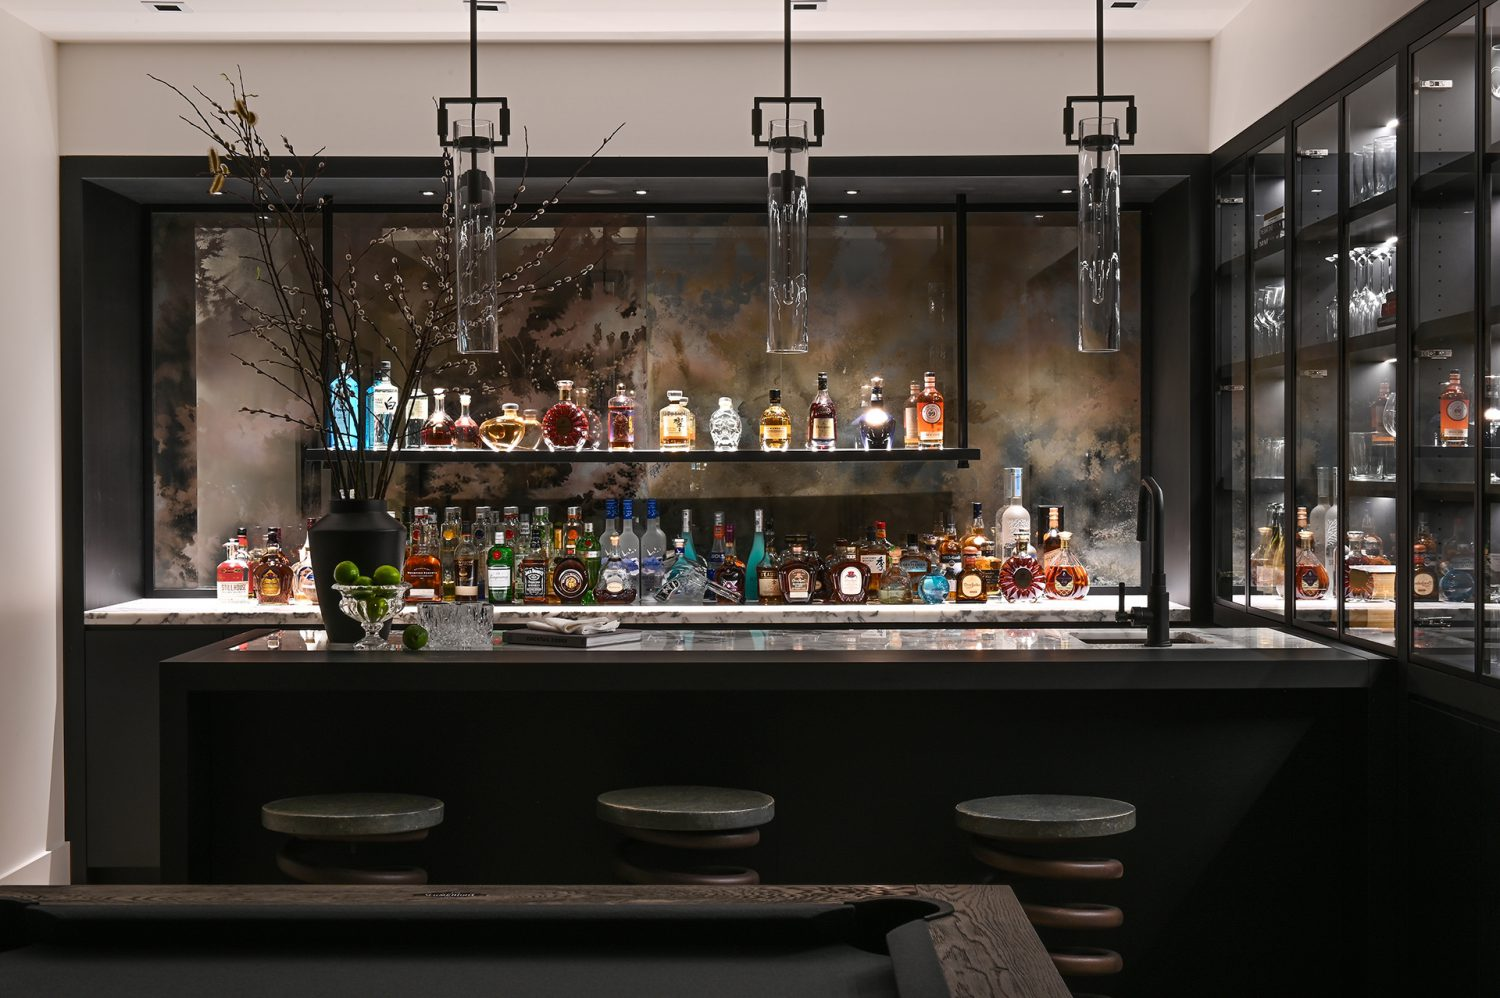 Ferme Moderne luxury bar designed by Midland Premium Properties in Vancouver, BC